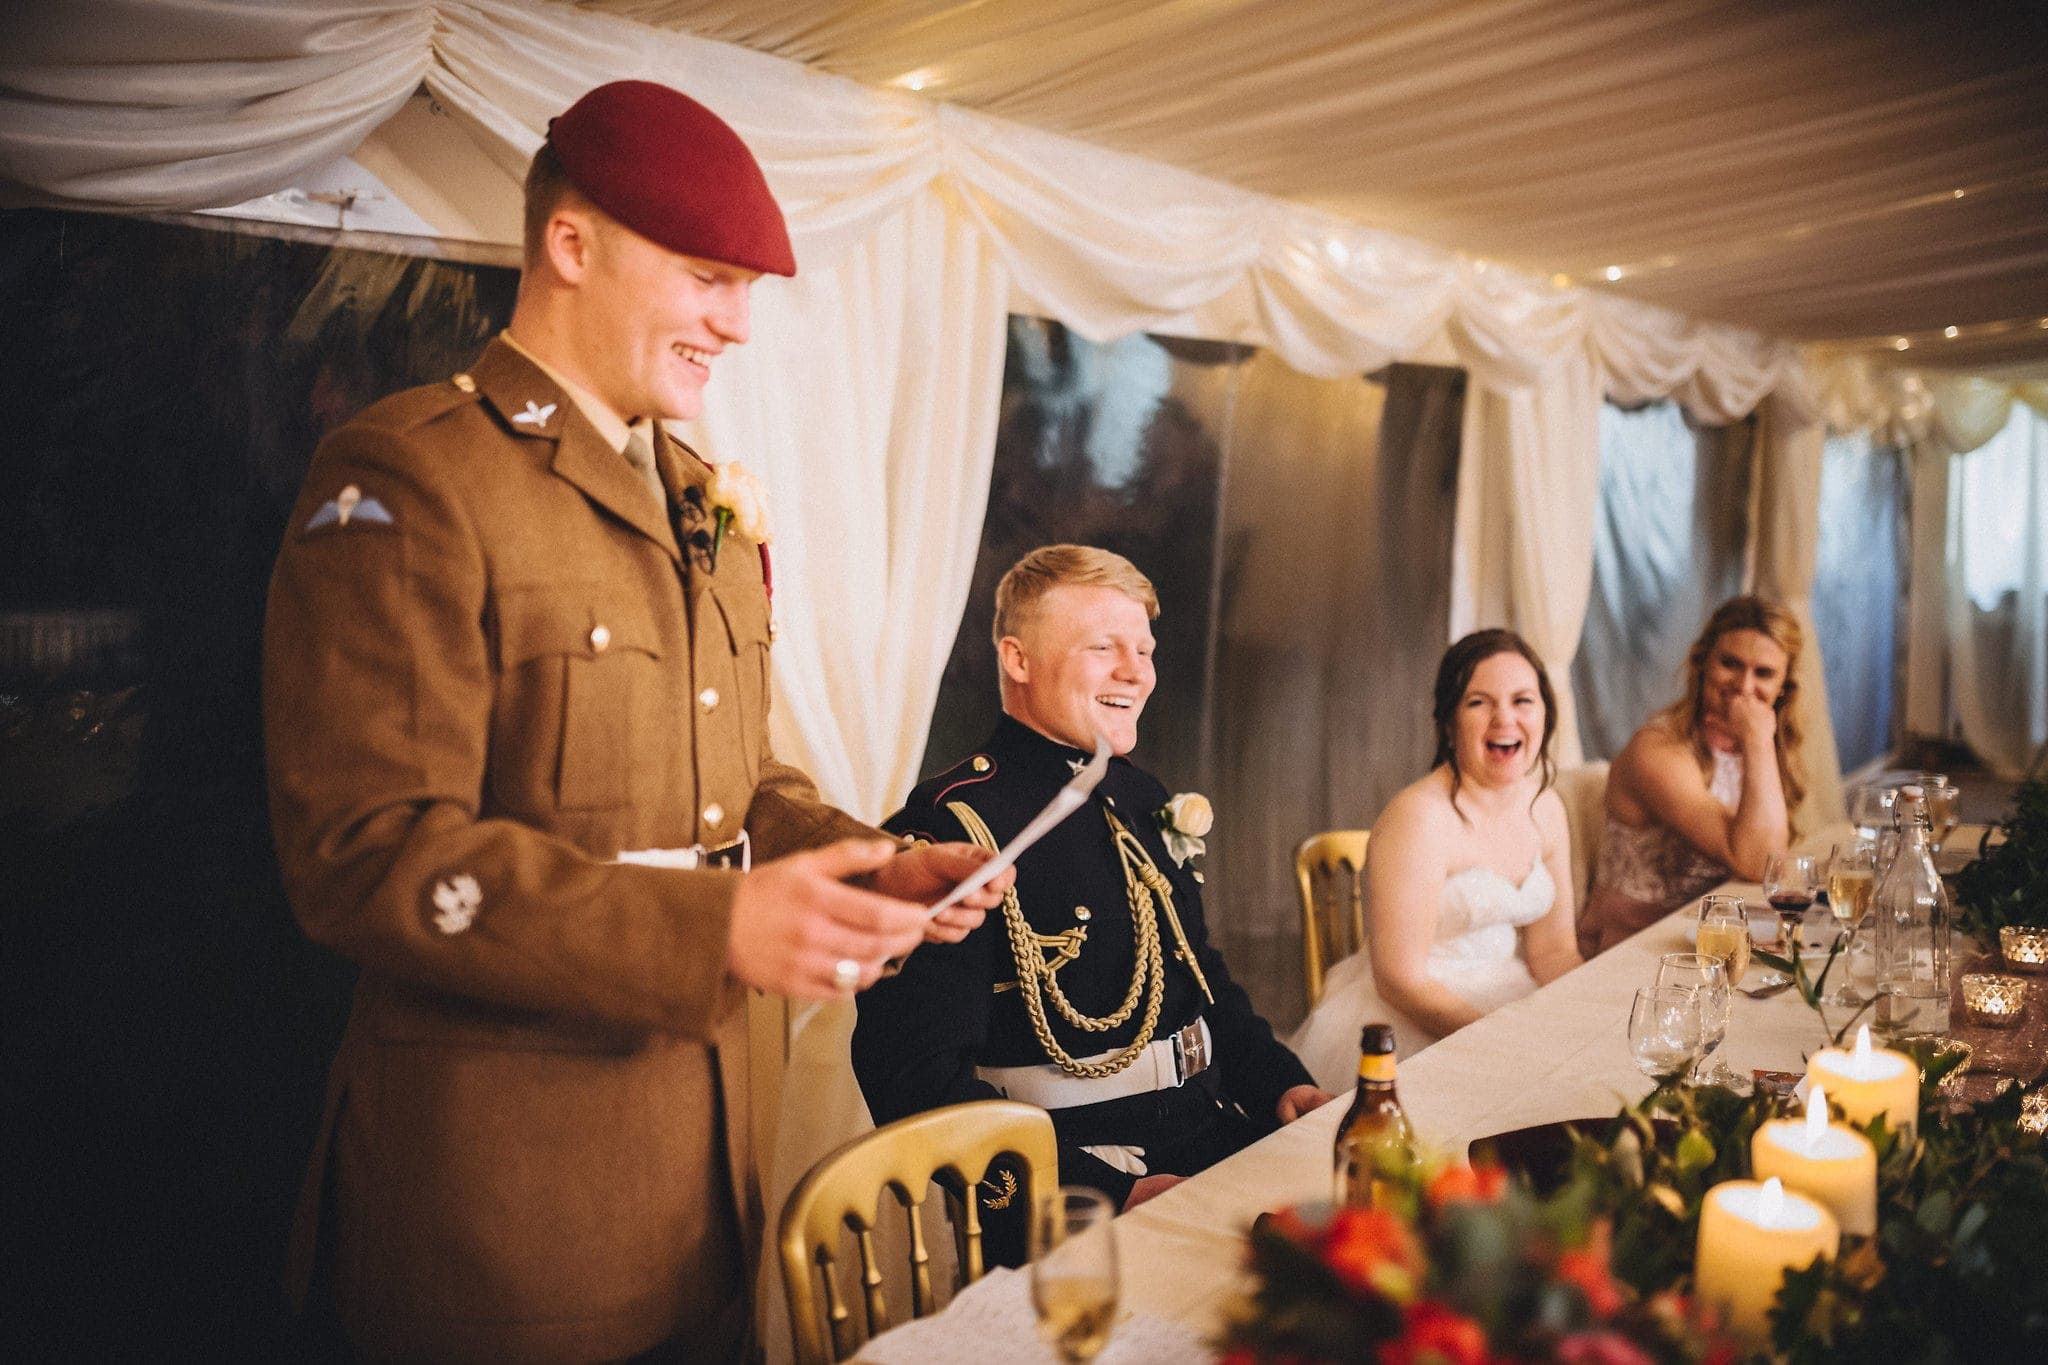 Best man in military uniform gives speech